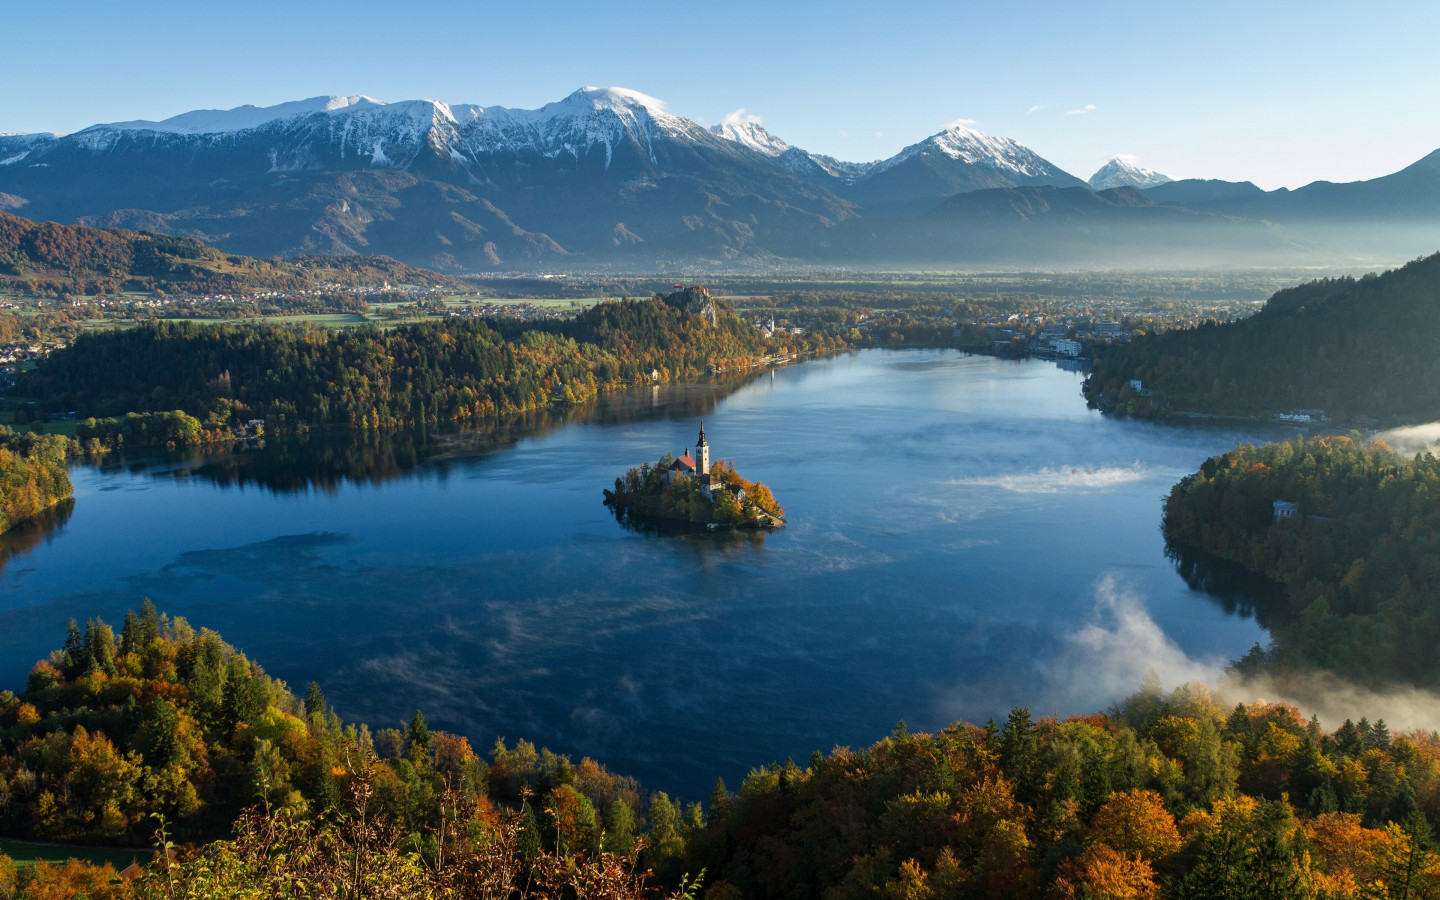 Best landscape from Bled, Slovenia | 1440x900 wallpaper